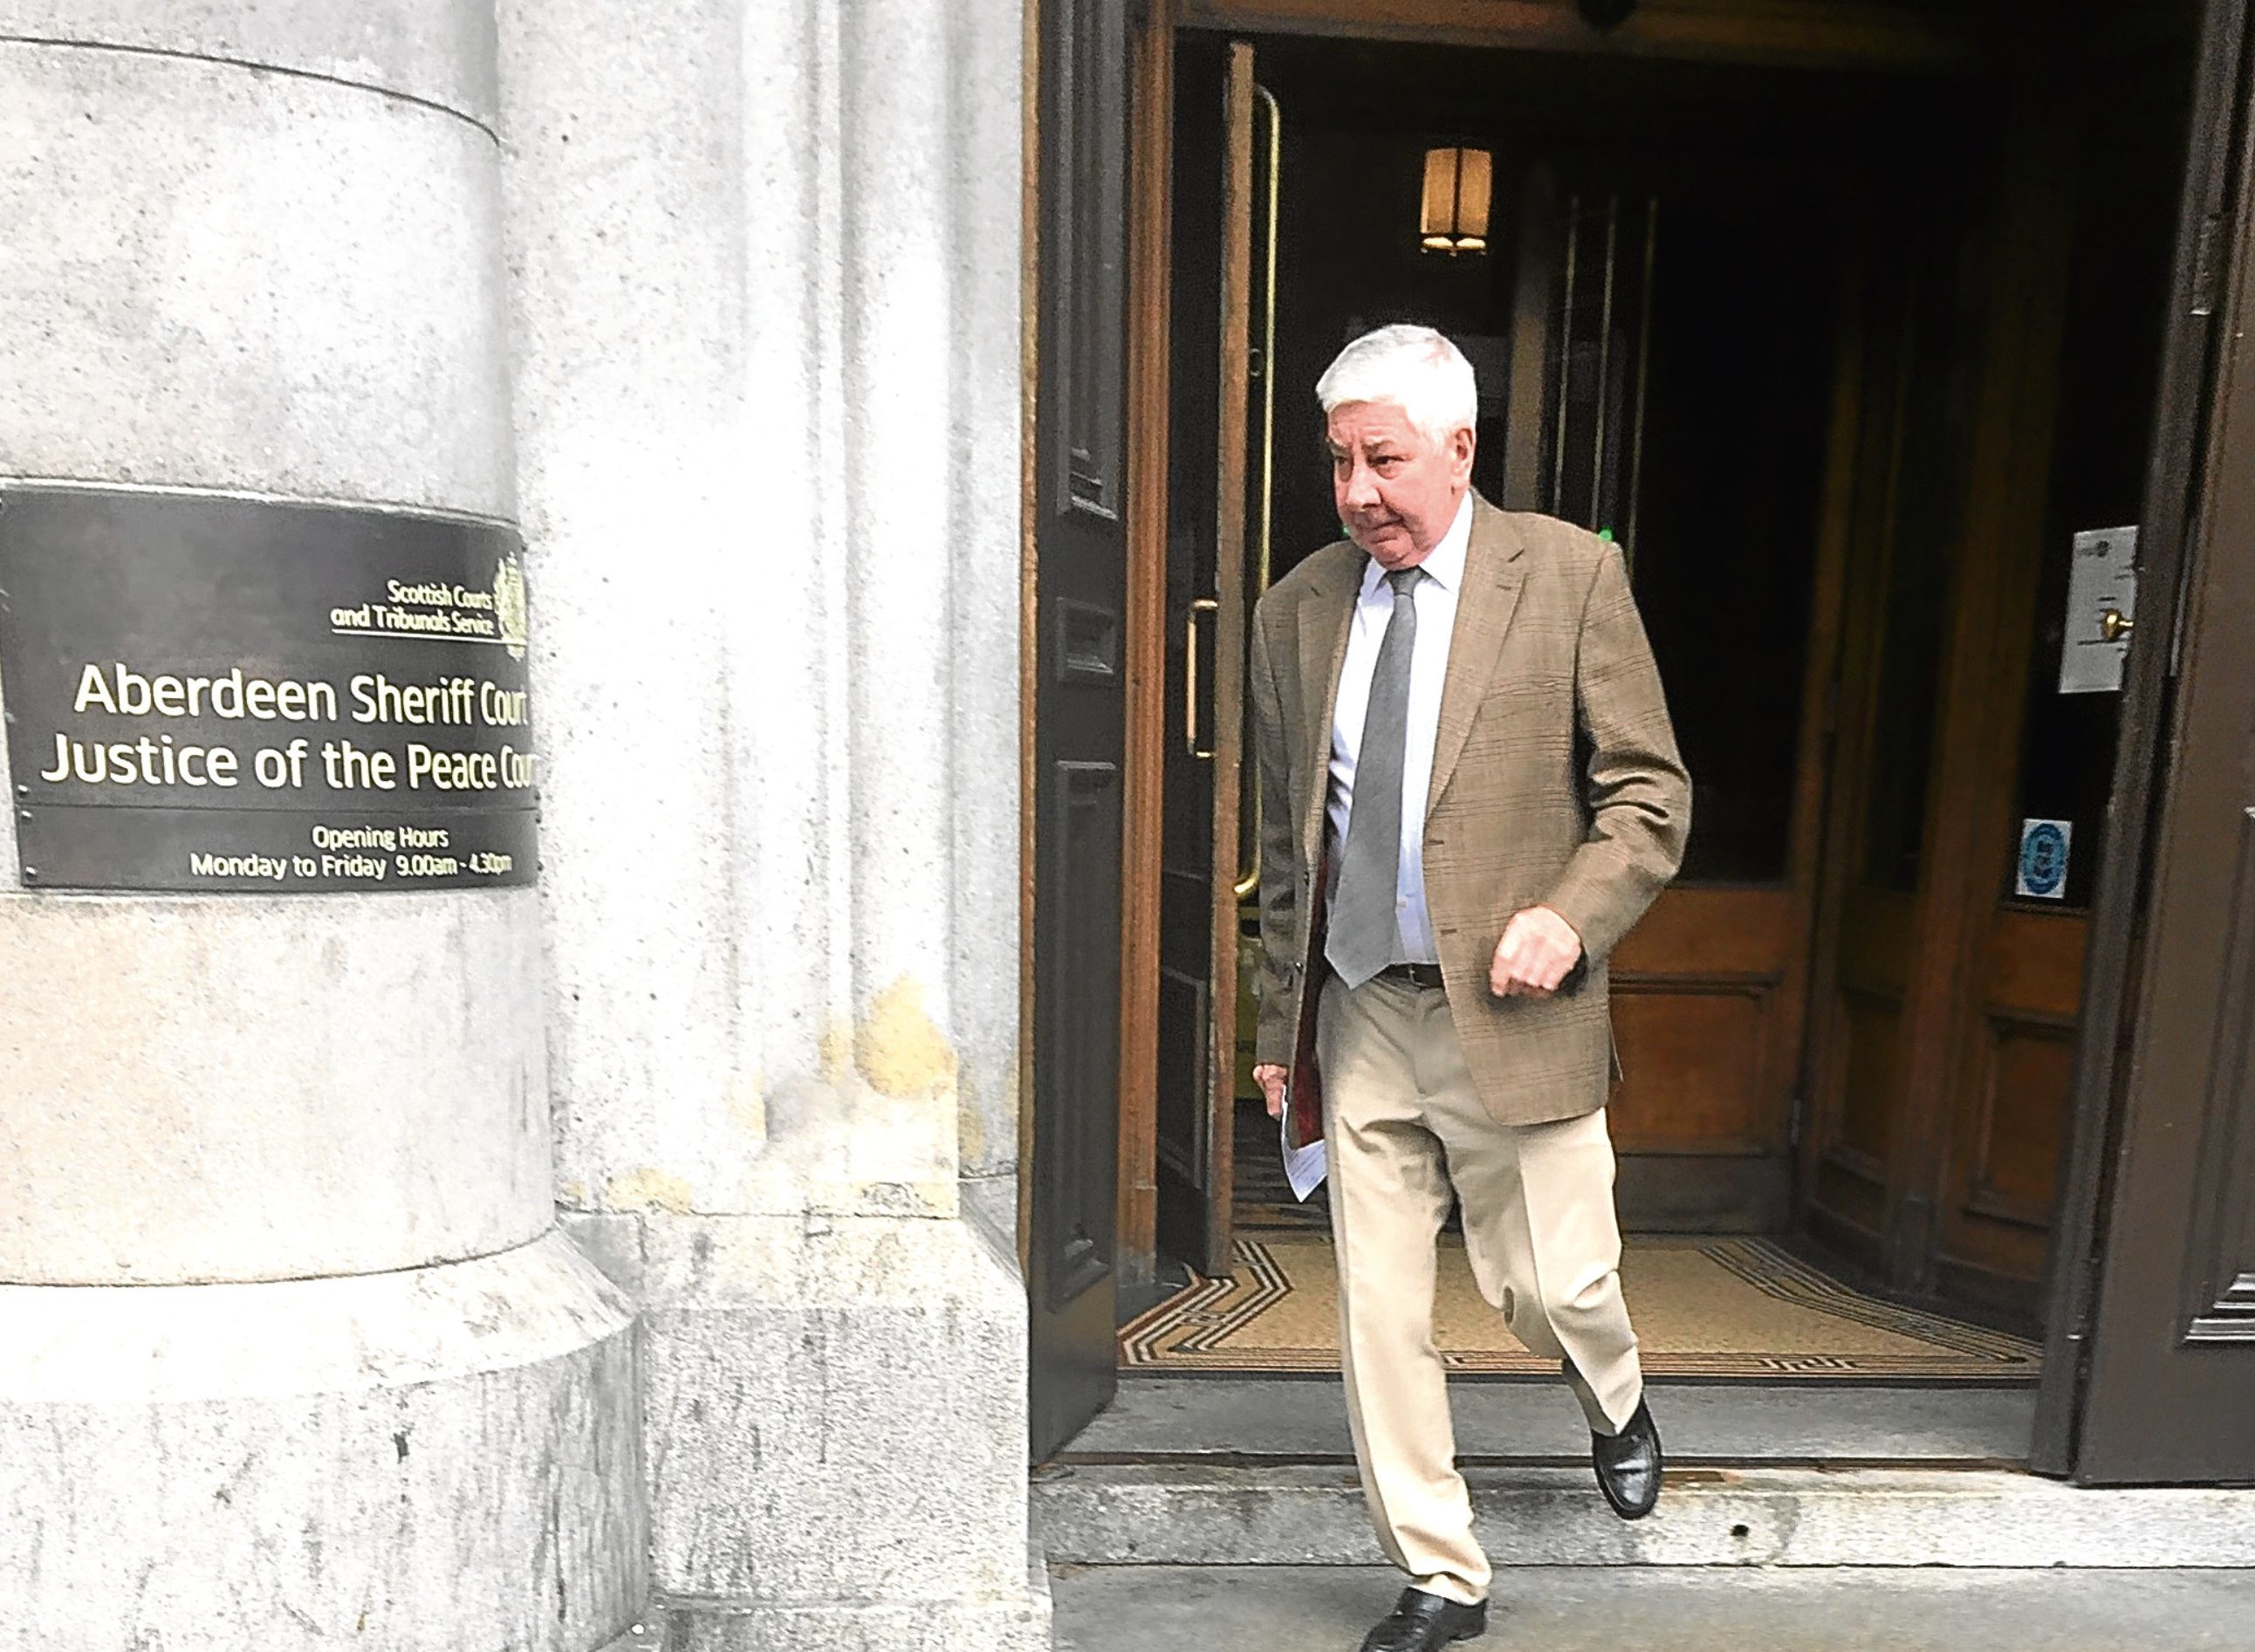 George Cheyne admitted the offence at Aberdeen Sheriff Court.